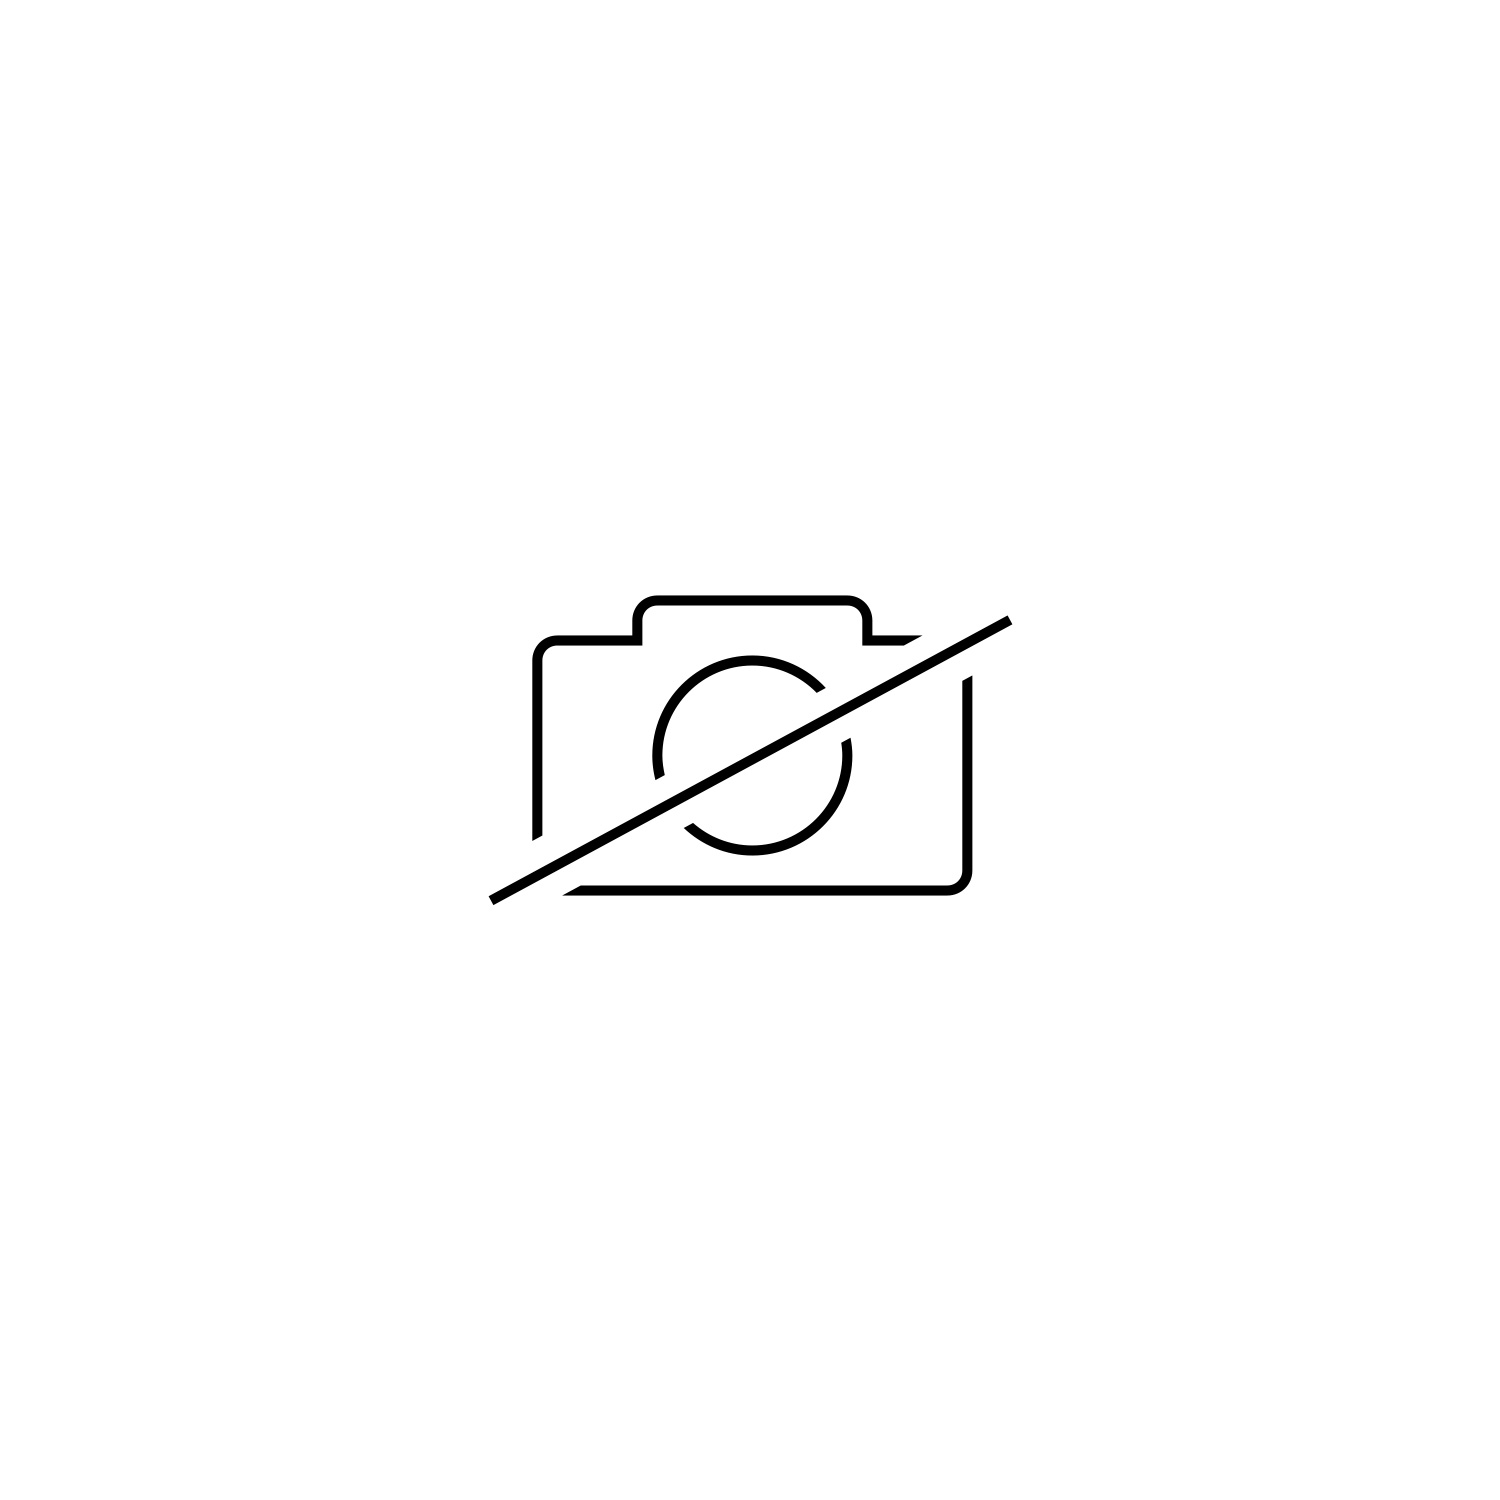 Audi Sport Zipoffjacket, Mens, black, XL